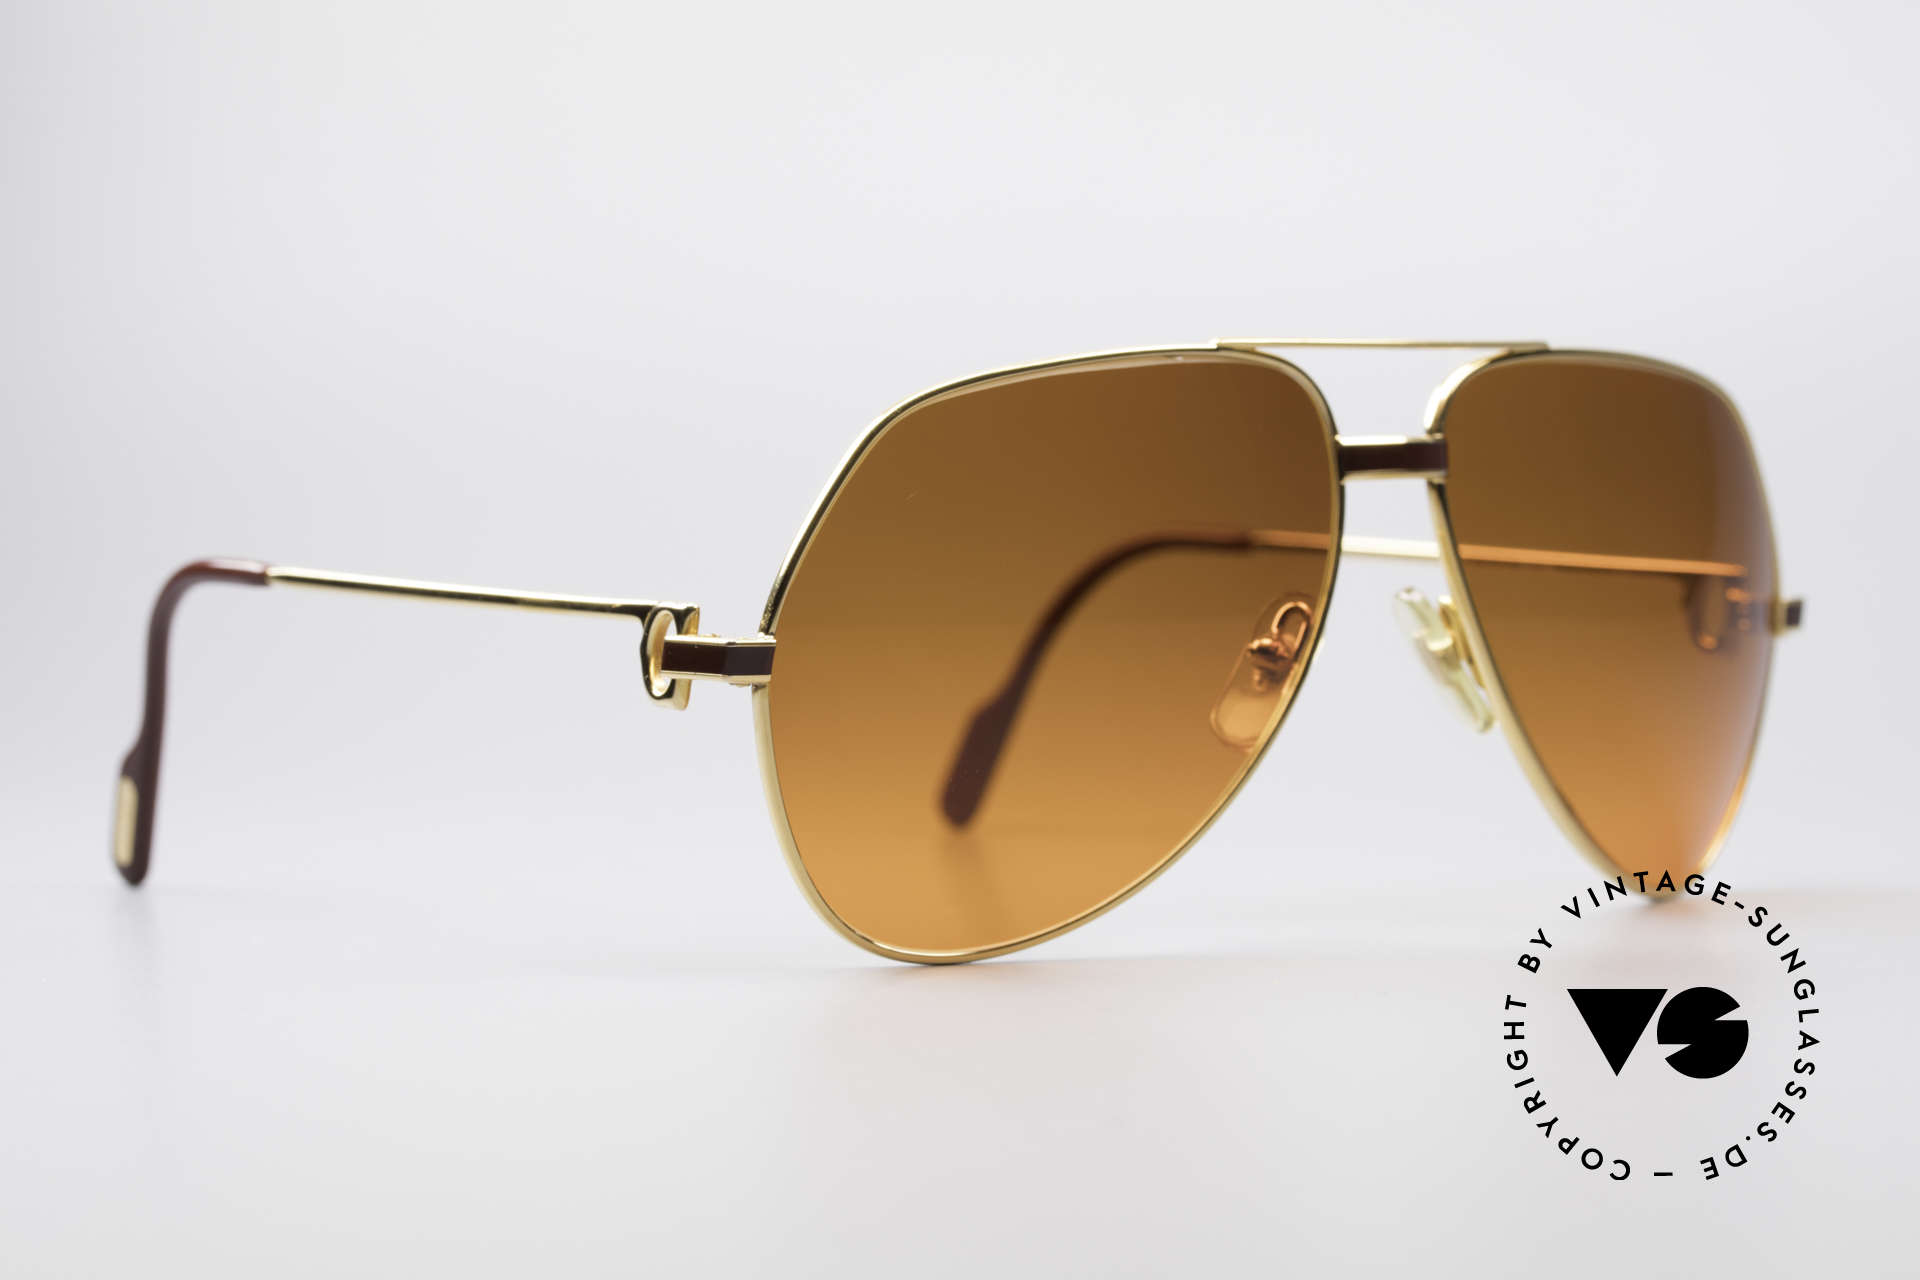 Cartier Vendome Laque - L Luxury 80's Aviator Sunglasses, this pair (with LAQUE decor) in LARGE size 62-14, 140, Made for Men and Women